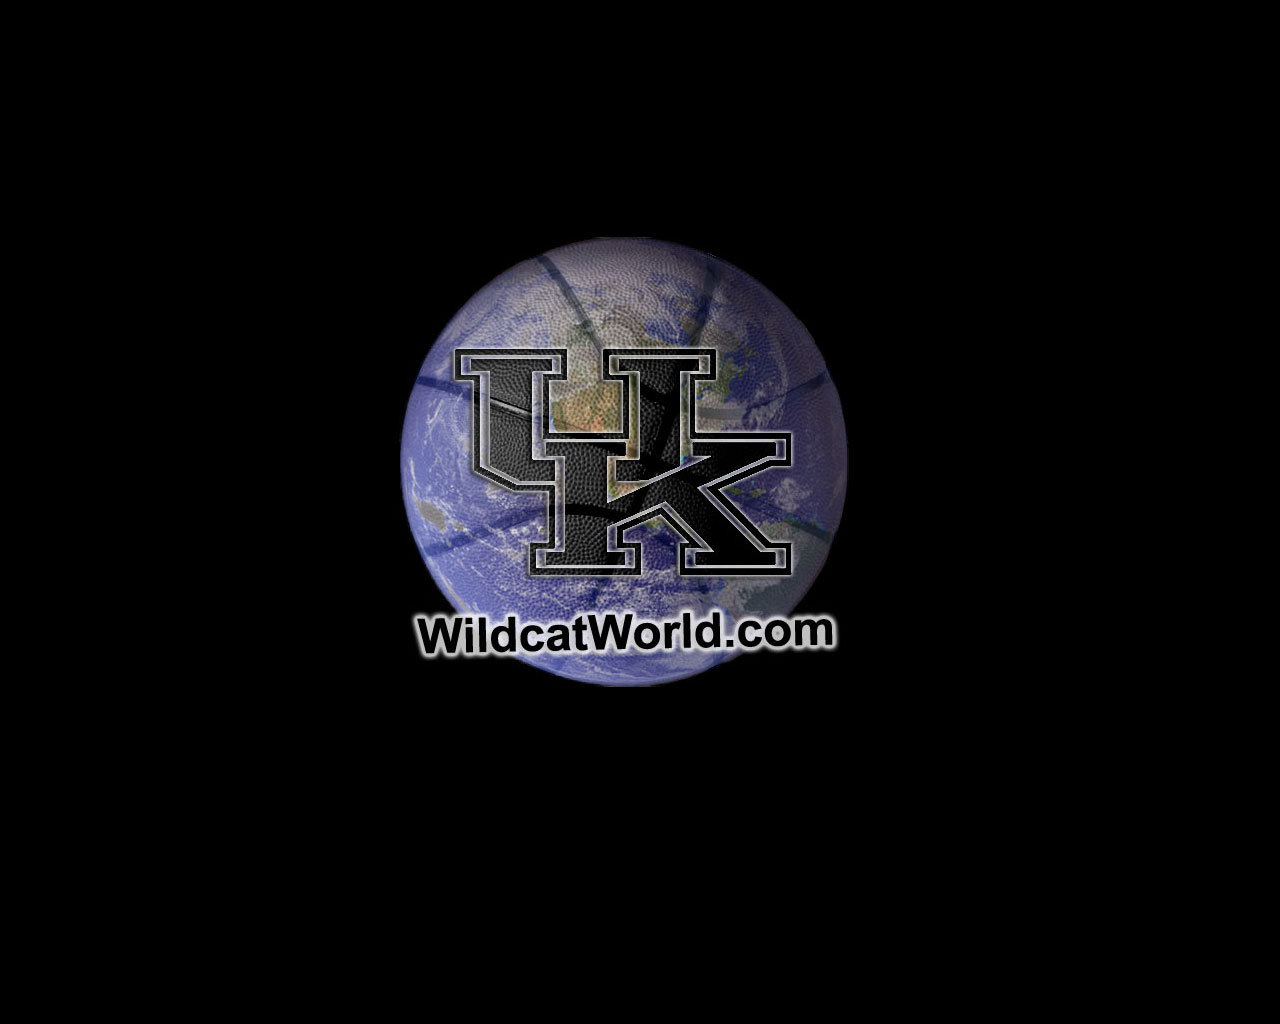 University Of Kentucky Chrome Themes IOS Wallpapers Blogs For 1280x1024